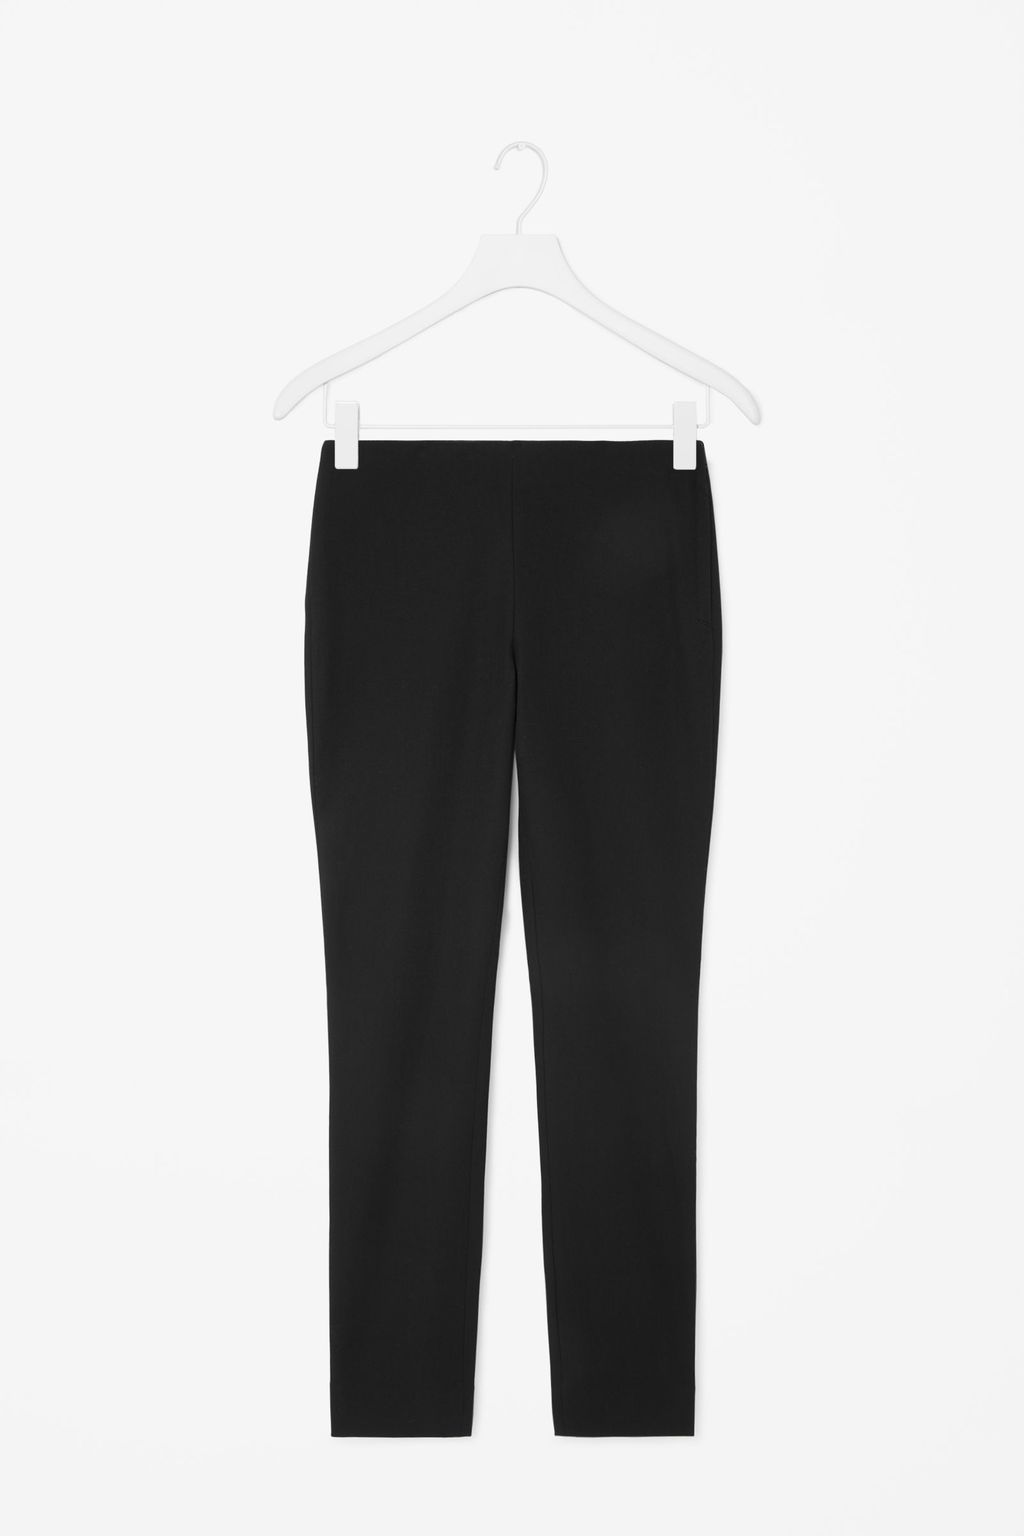 Slim Fit Trousers - length: standard; pattern: plain; waist: mid/regular rise; predominant colour: black; occasions: work, creative work; fibres: cotton - stretch; fit: slim leg; pattern type: fabric; texture group: woven light midweight; style: standard; season: a/w 2015; wardrobe: basic